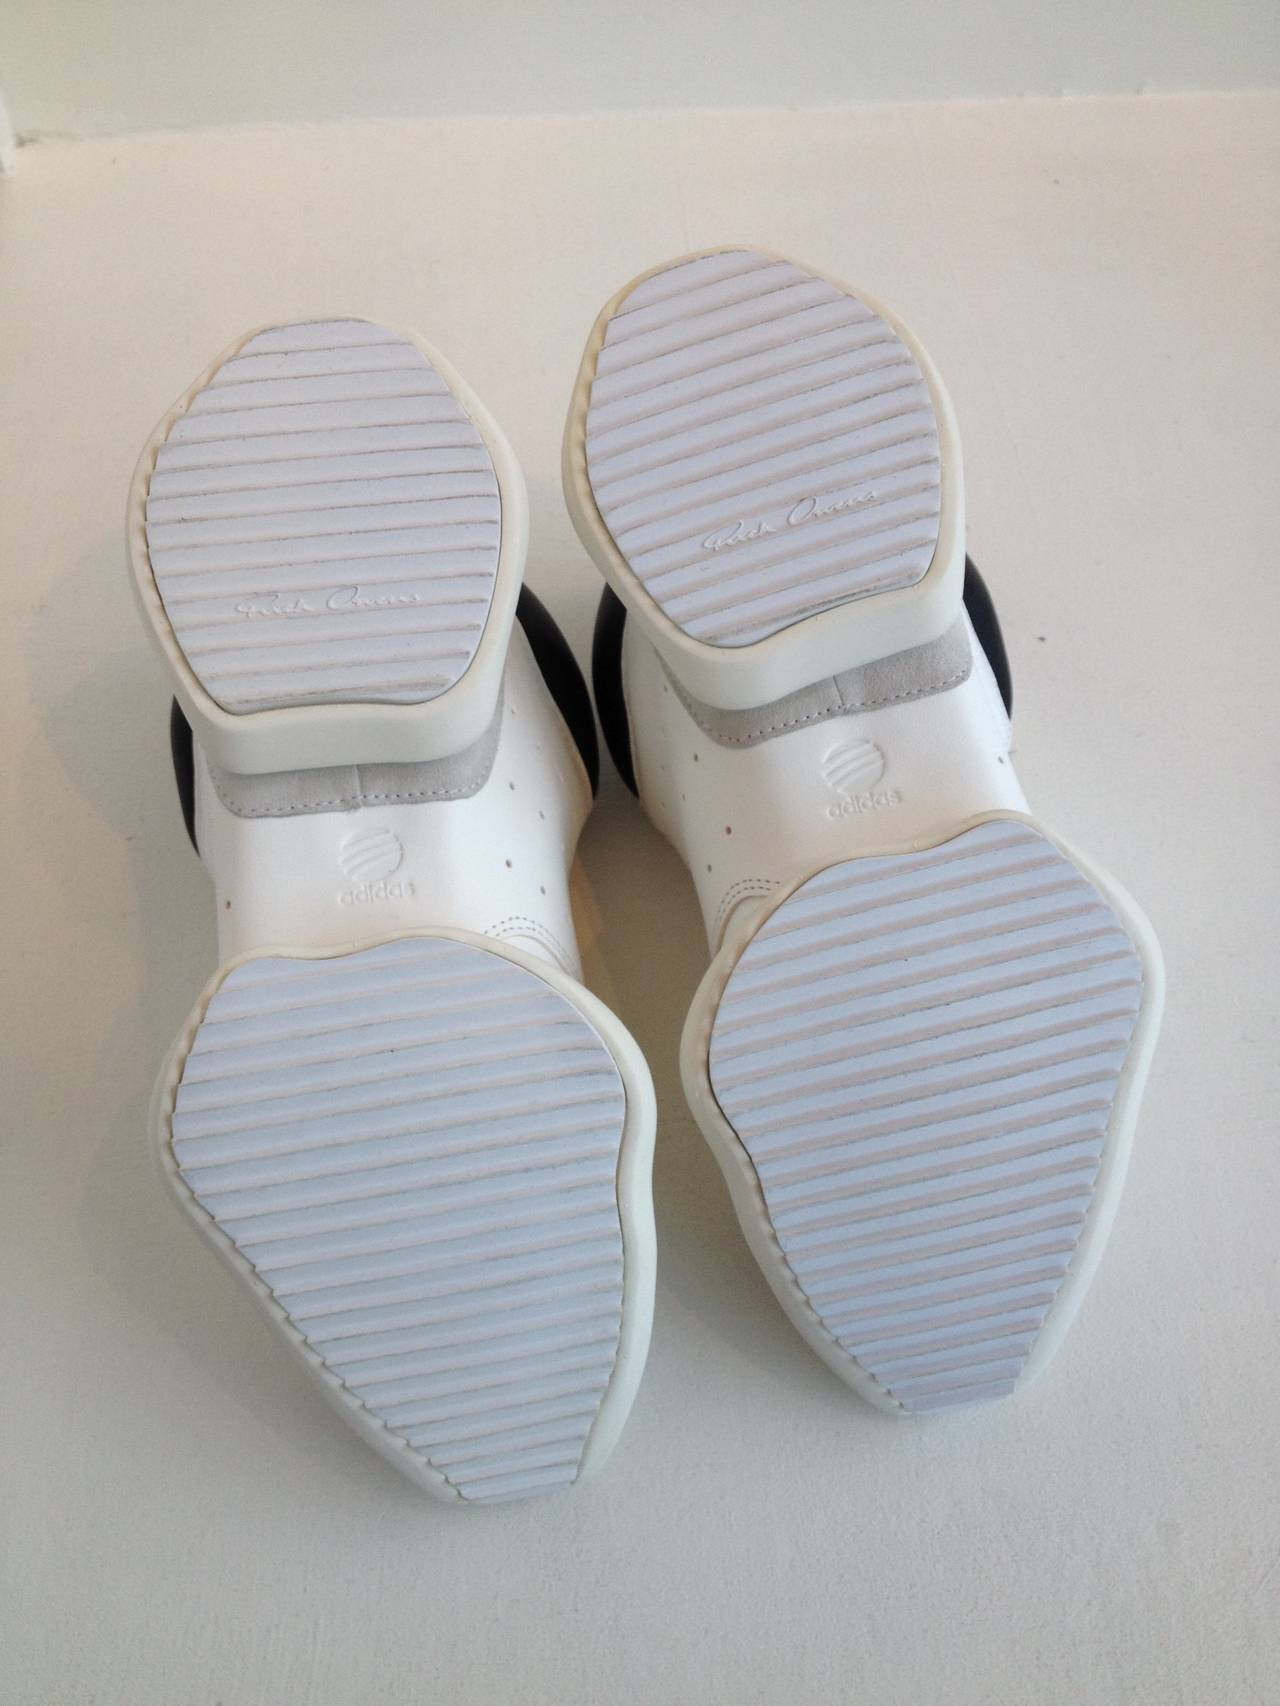 Rick Owens for Adidas White Puffy Sneakers For Sale 2